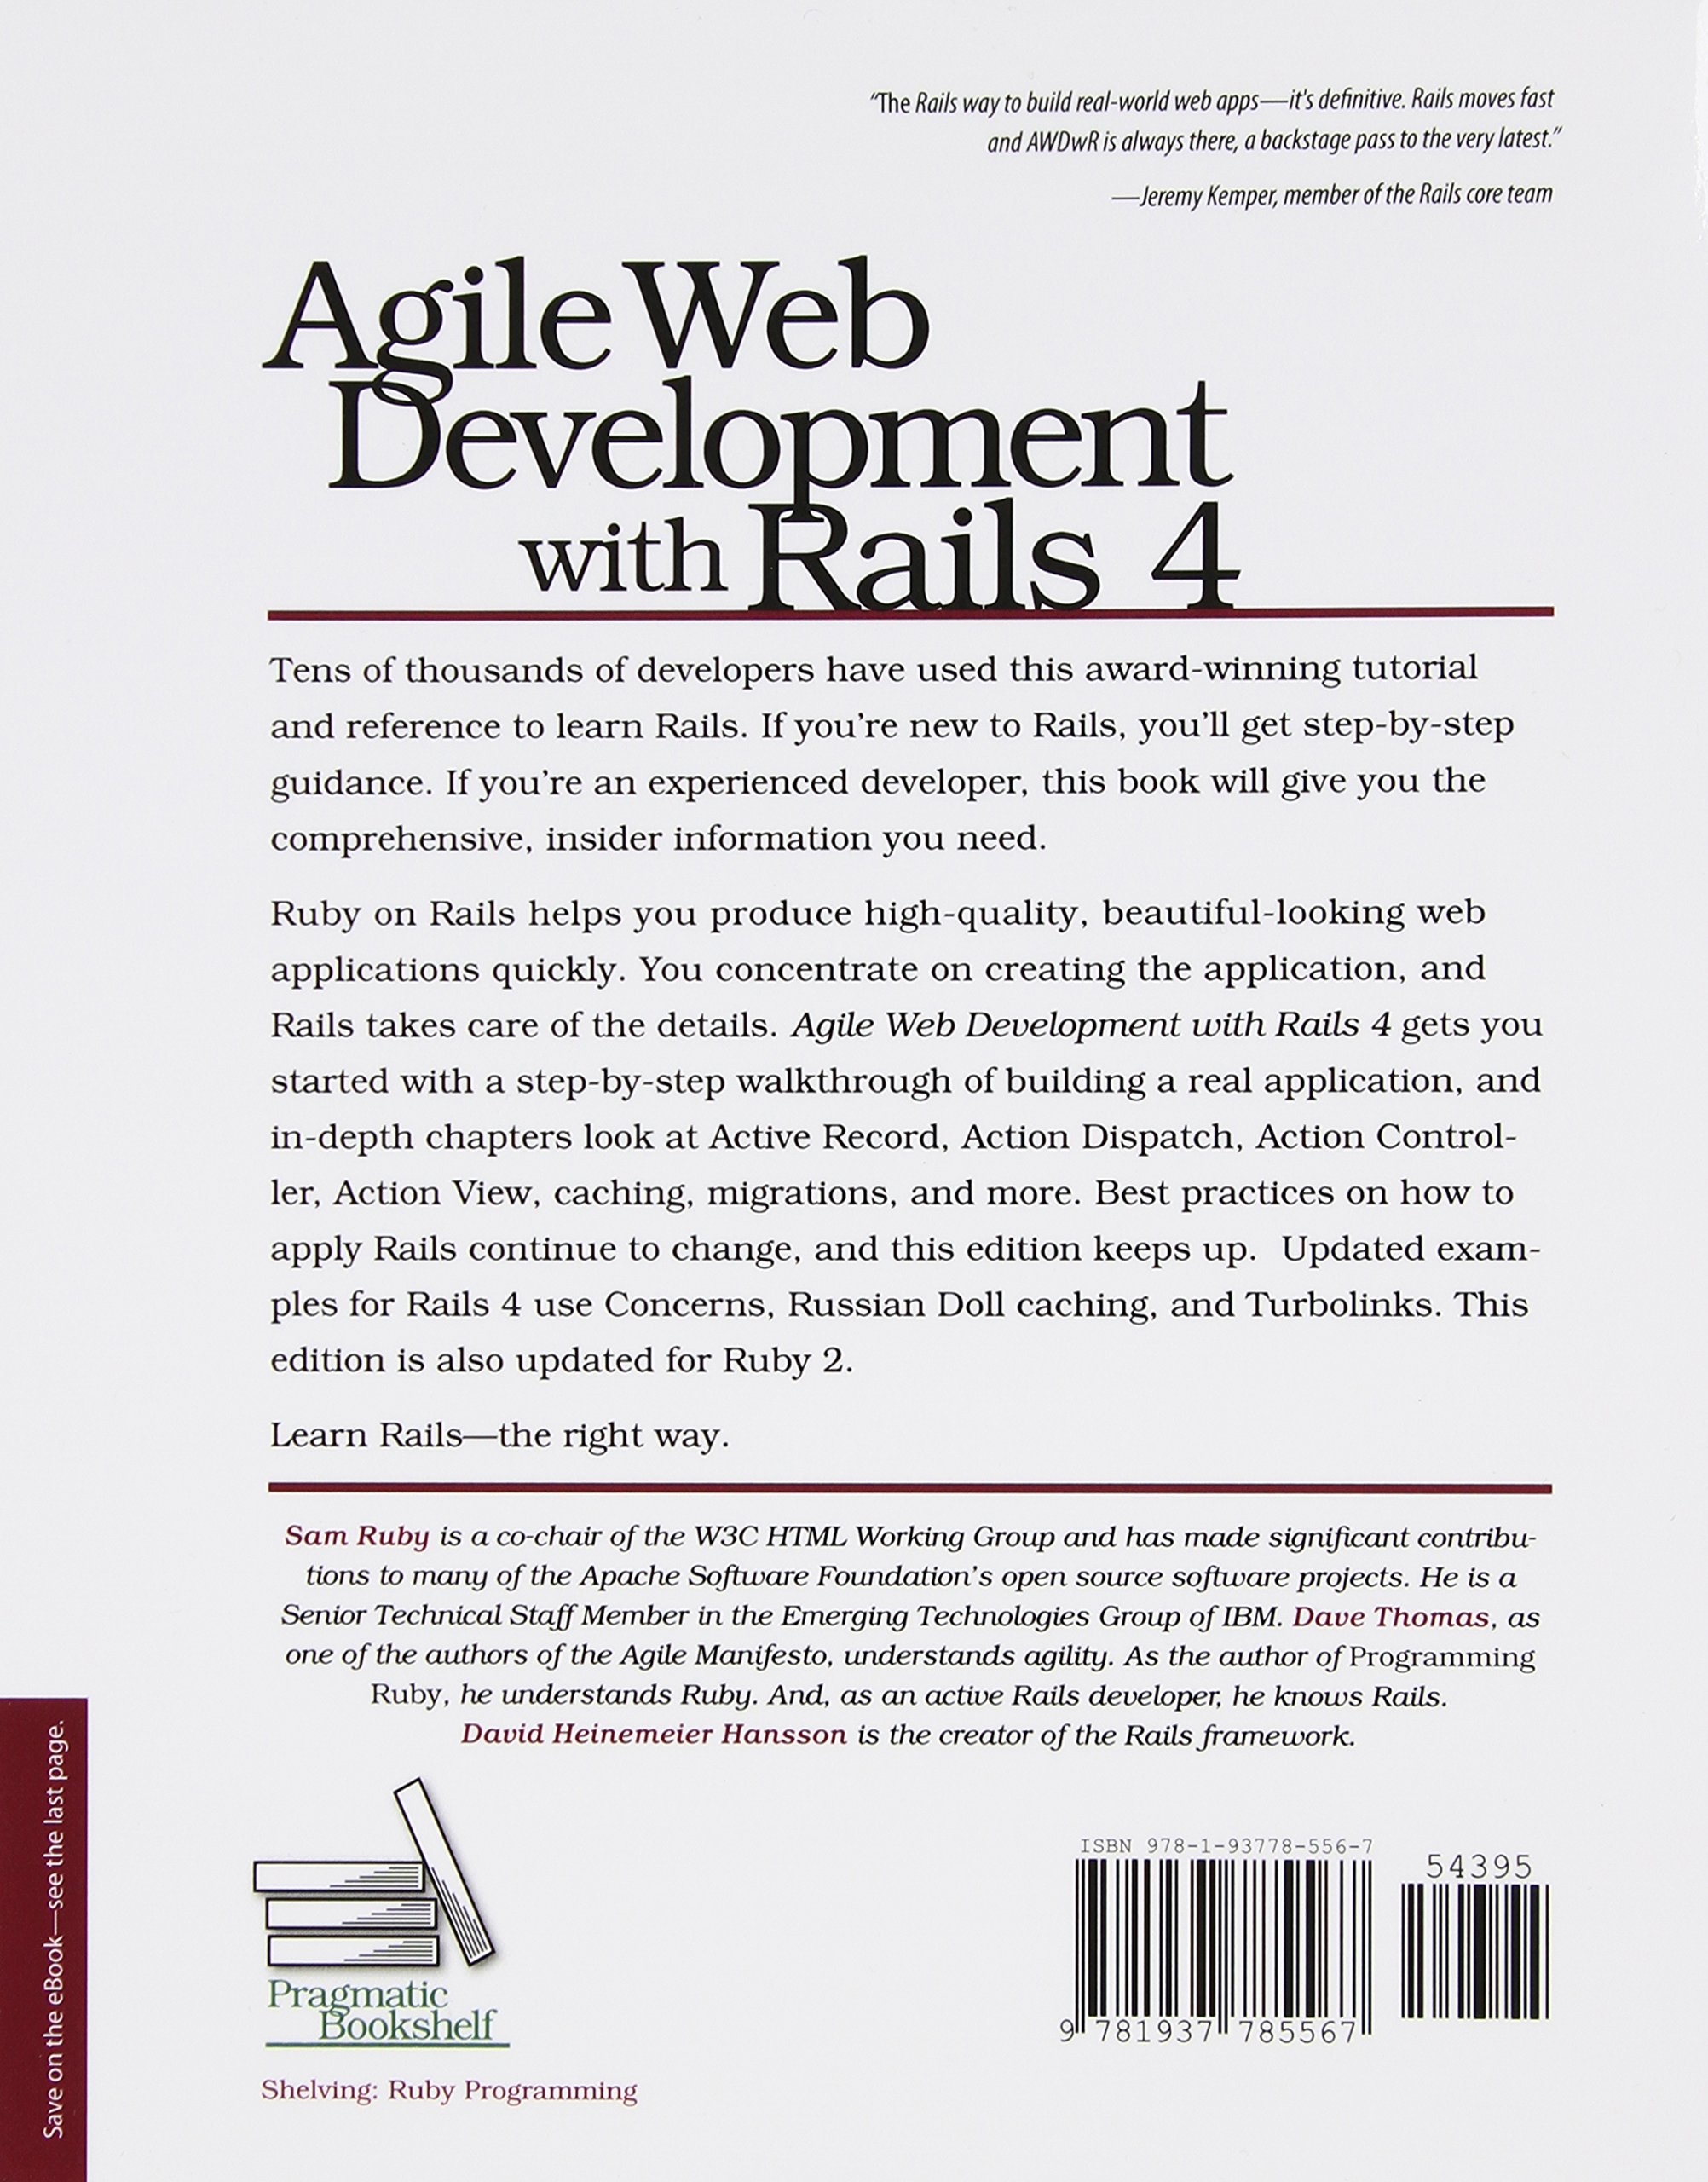 Agile web development with rails 4 pragmatic programmers amazon co uk sam ruby dave thomas david heinemeier hansson 9781937785567 books